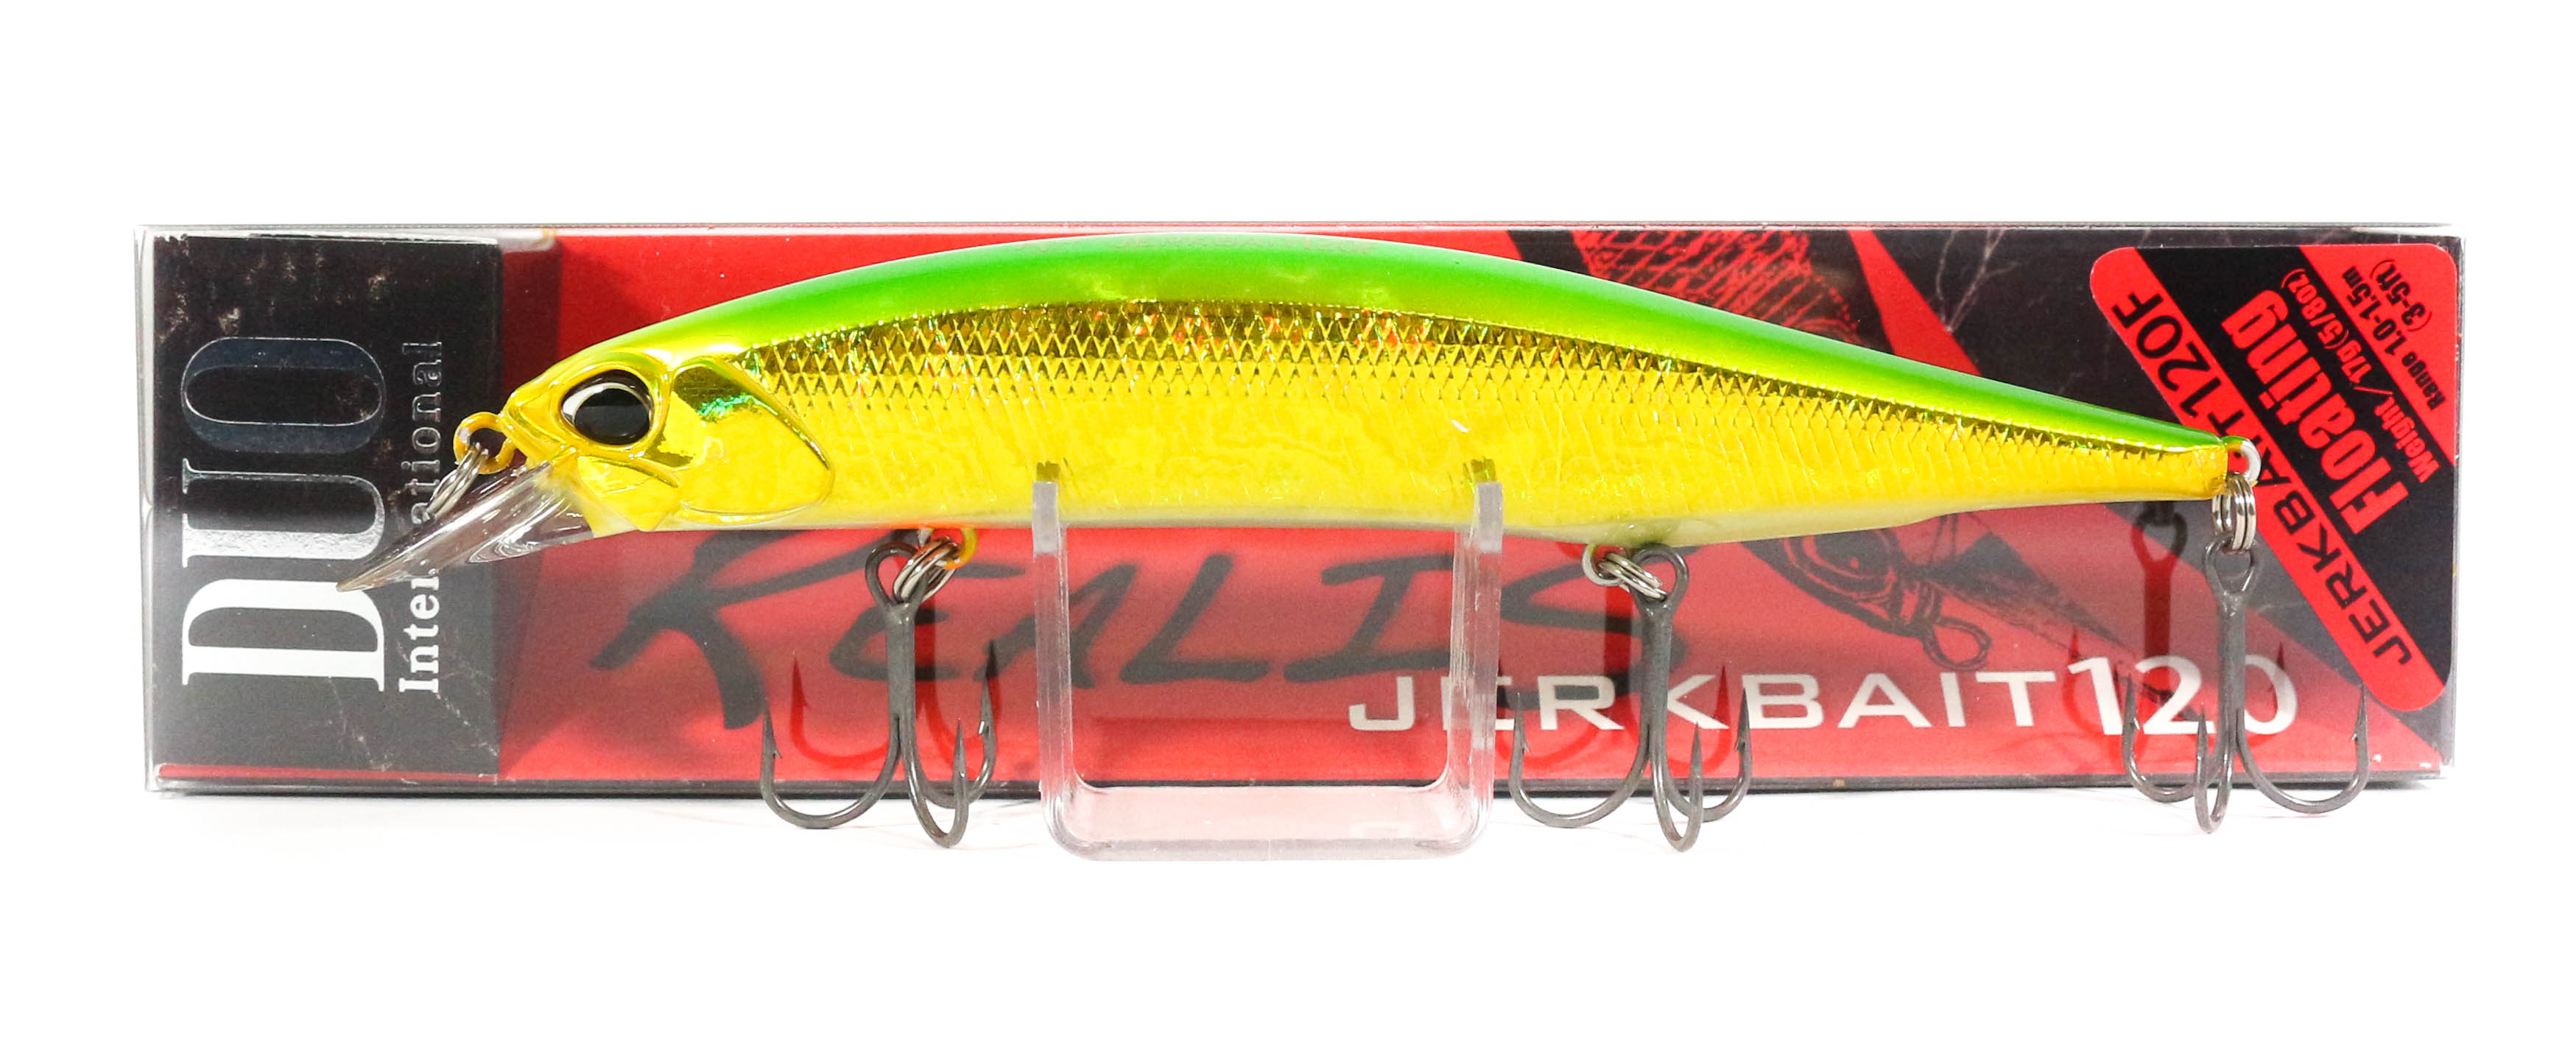 Duo Realis Jerkbait 120F Floating Lure ADA3185 (7753)